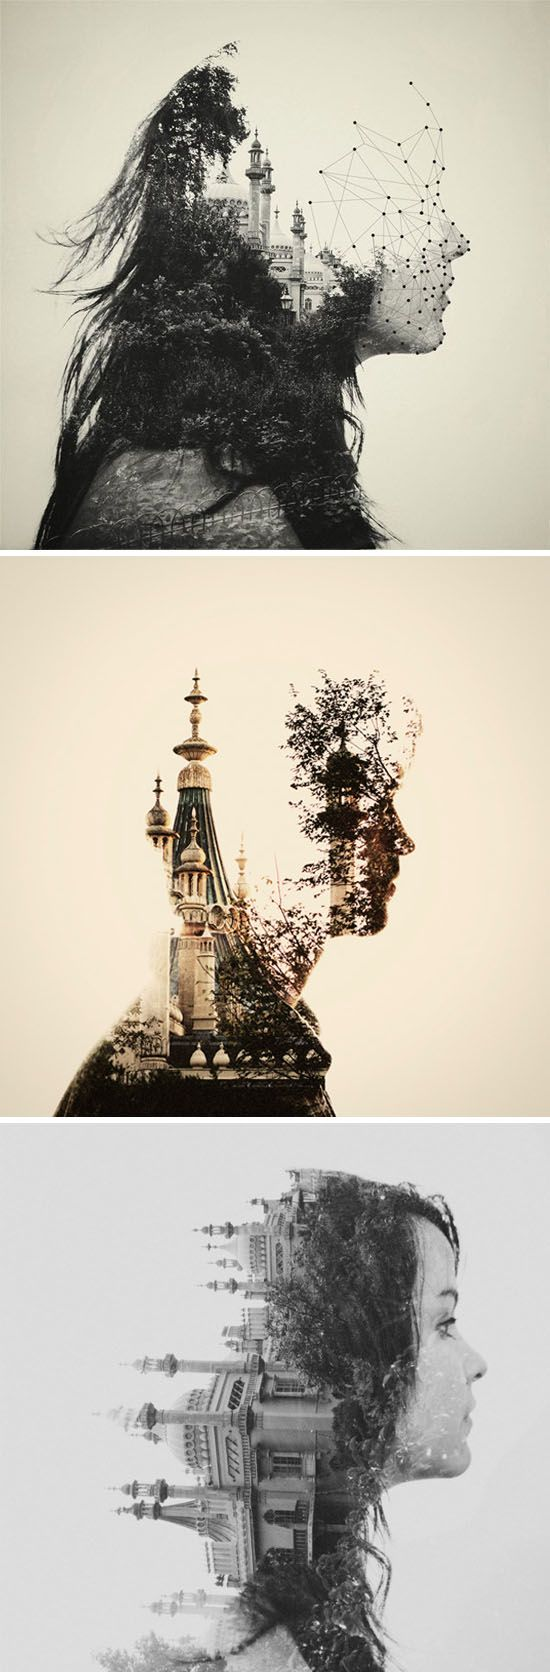 dan mountford, double exposure portraits